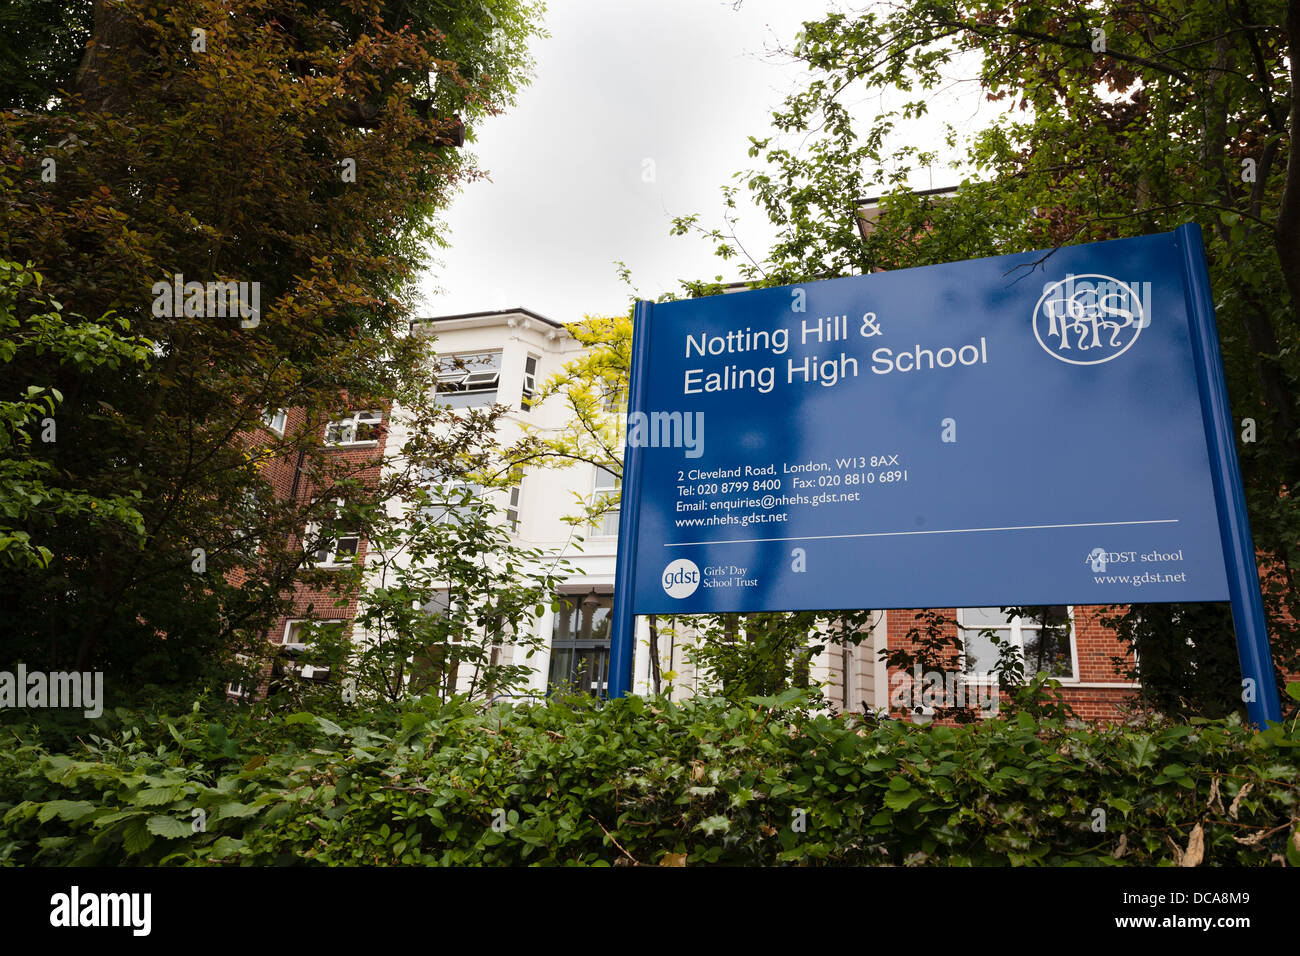 School sign outside Notting Hill Ealing High School - Stock Image